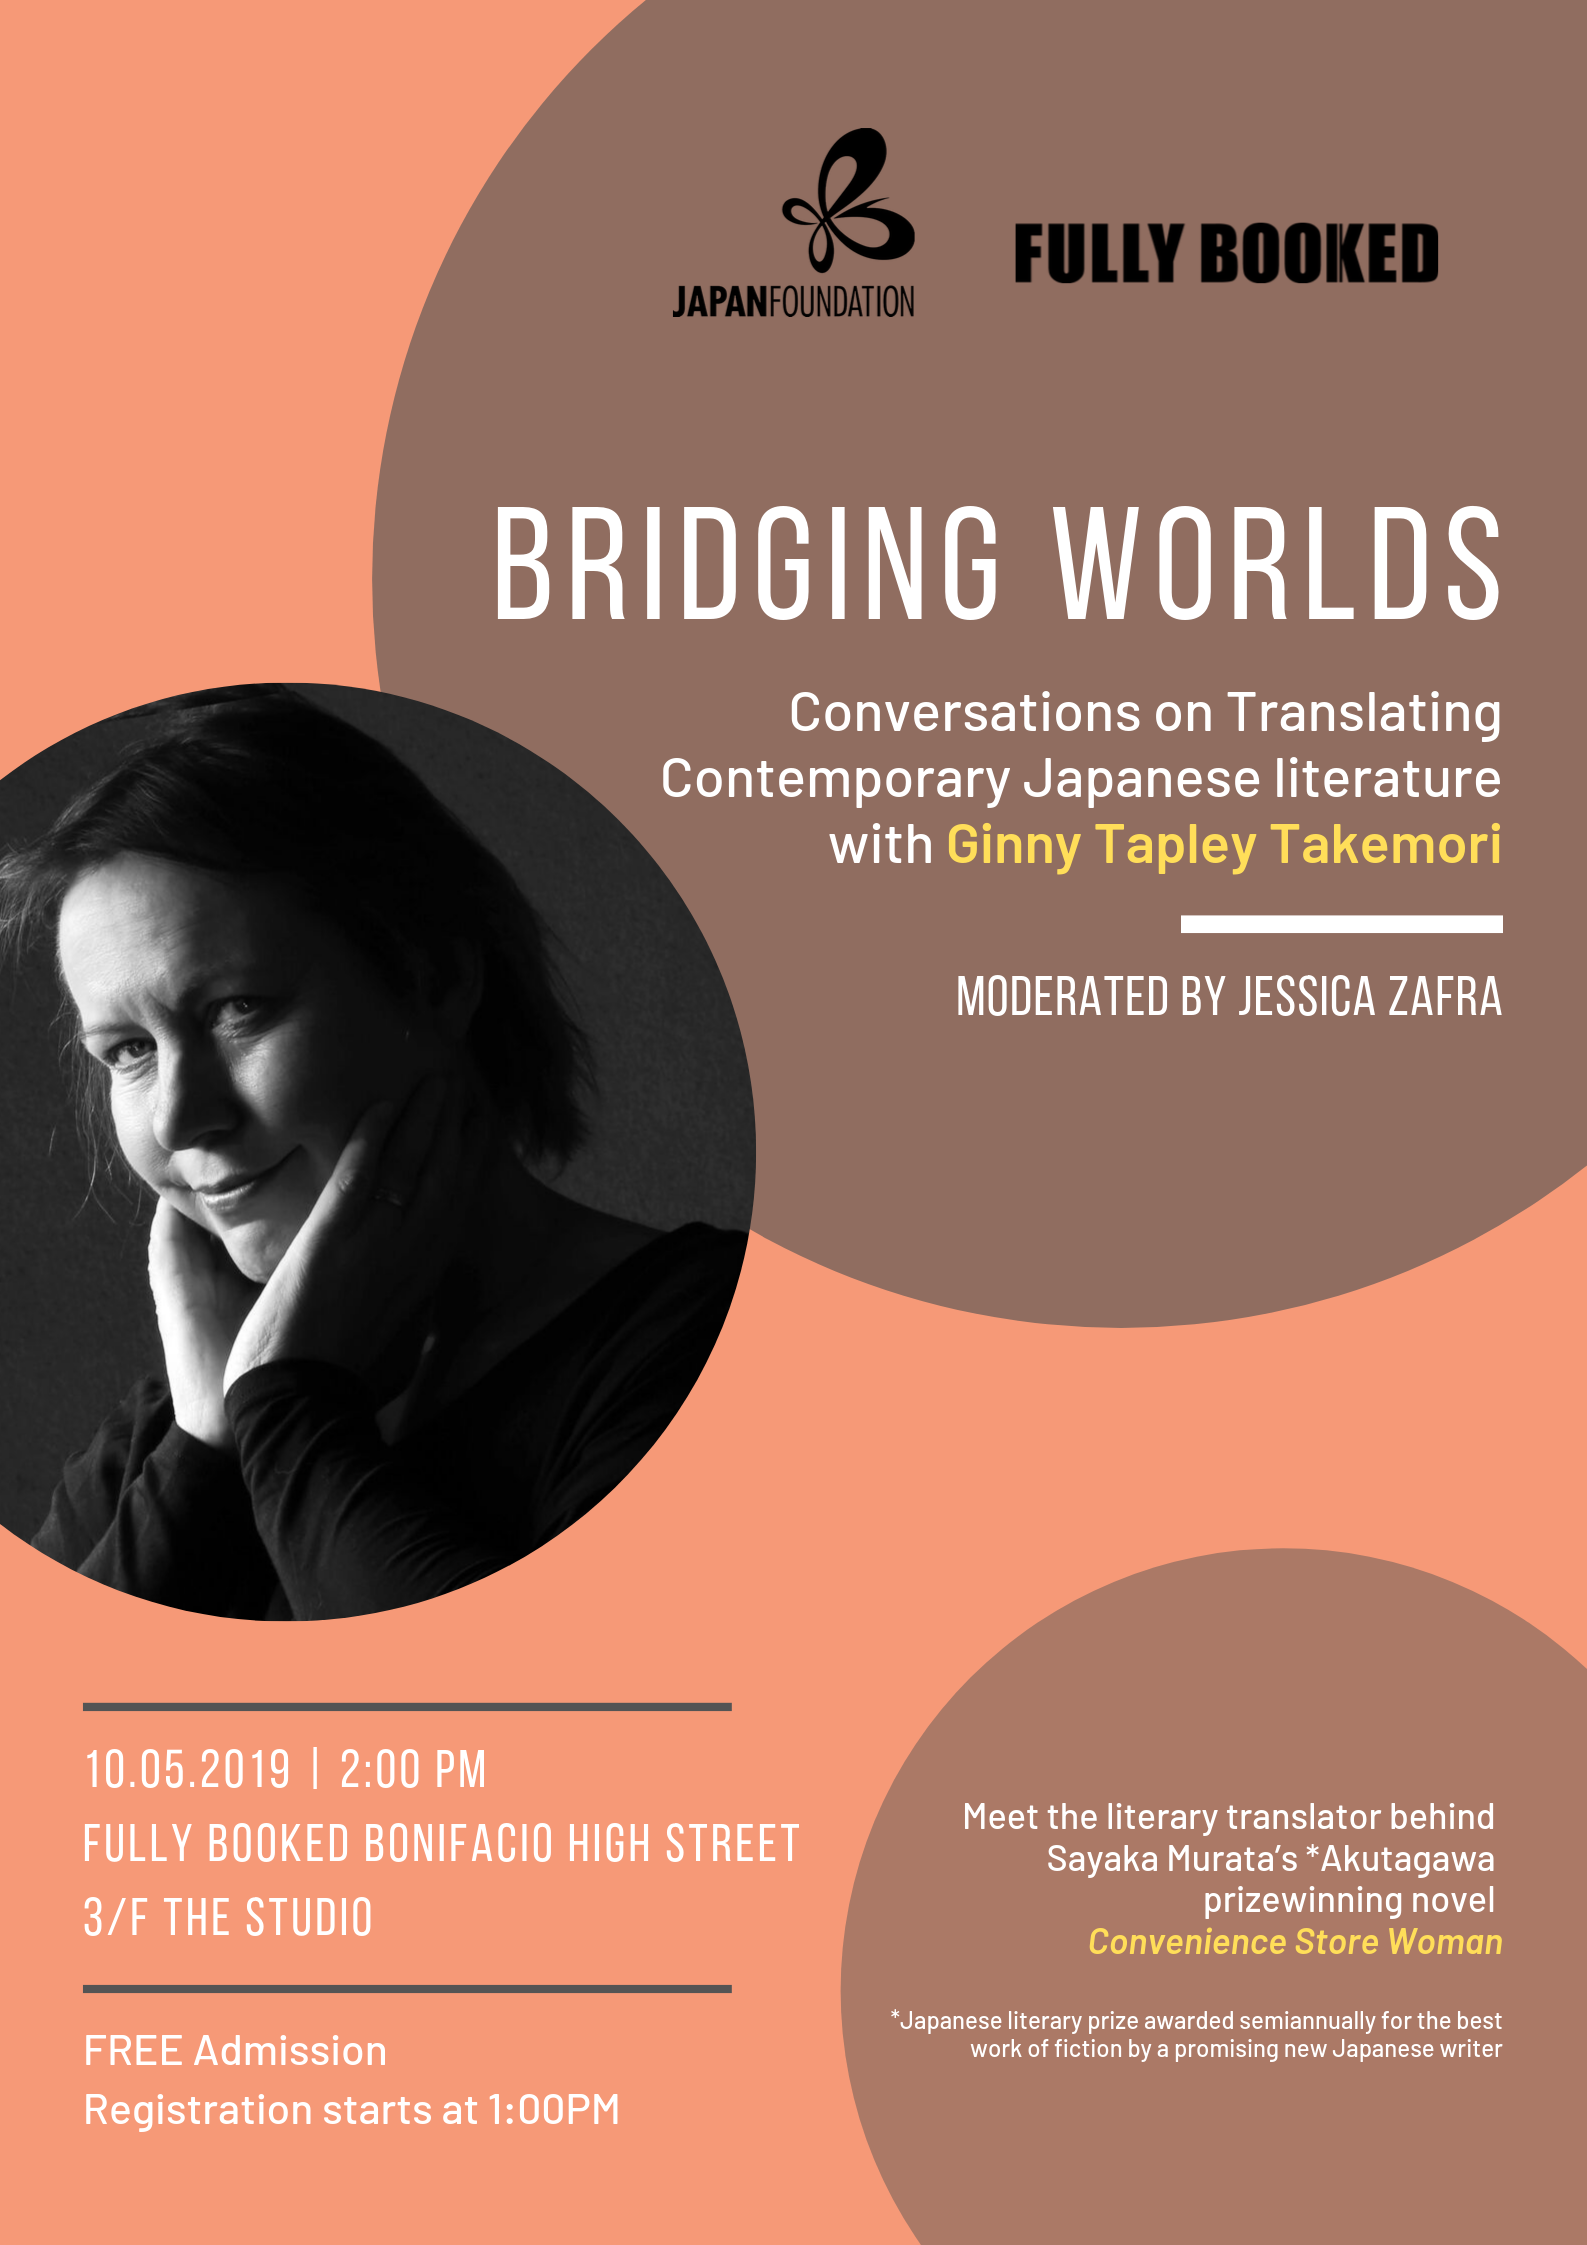 Literature Talk with Ginny Takemori in Fully Booked